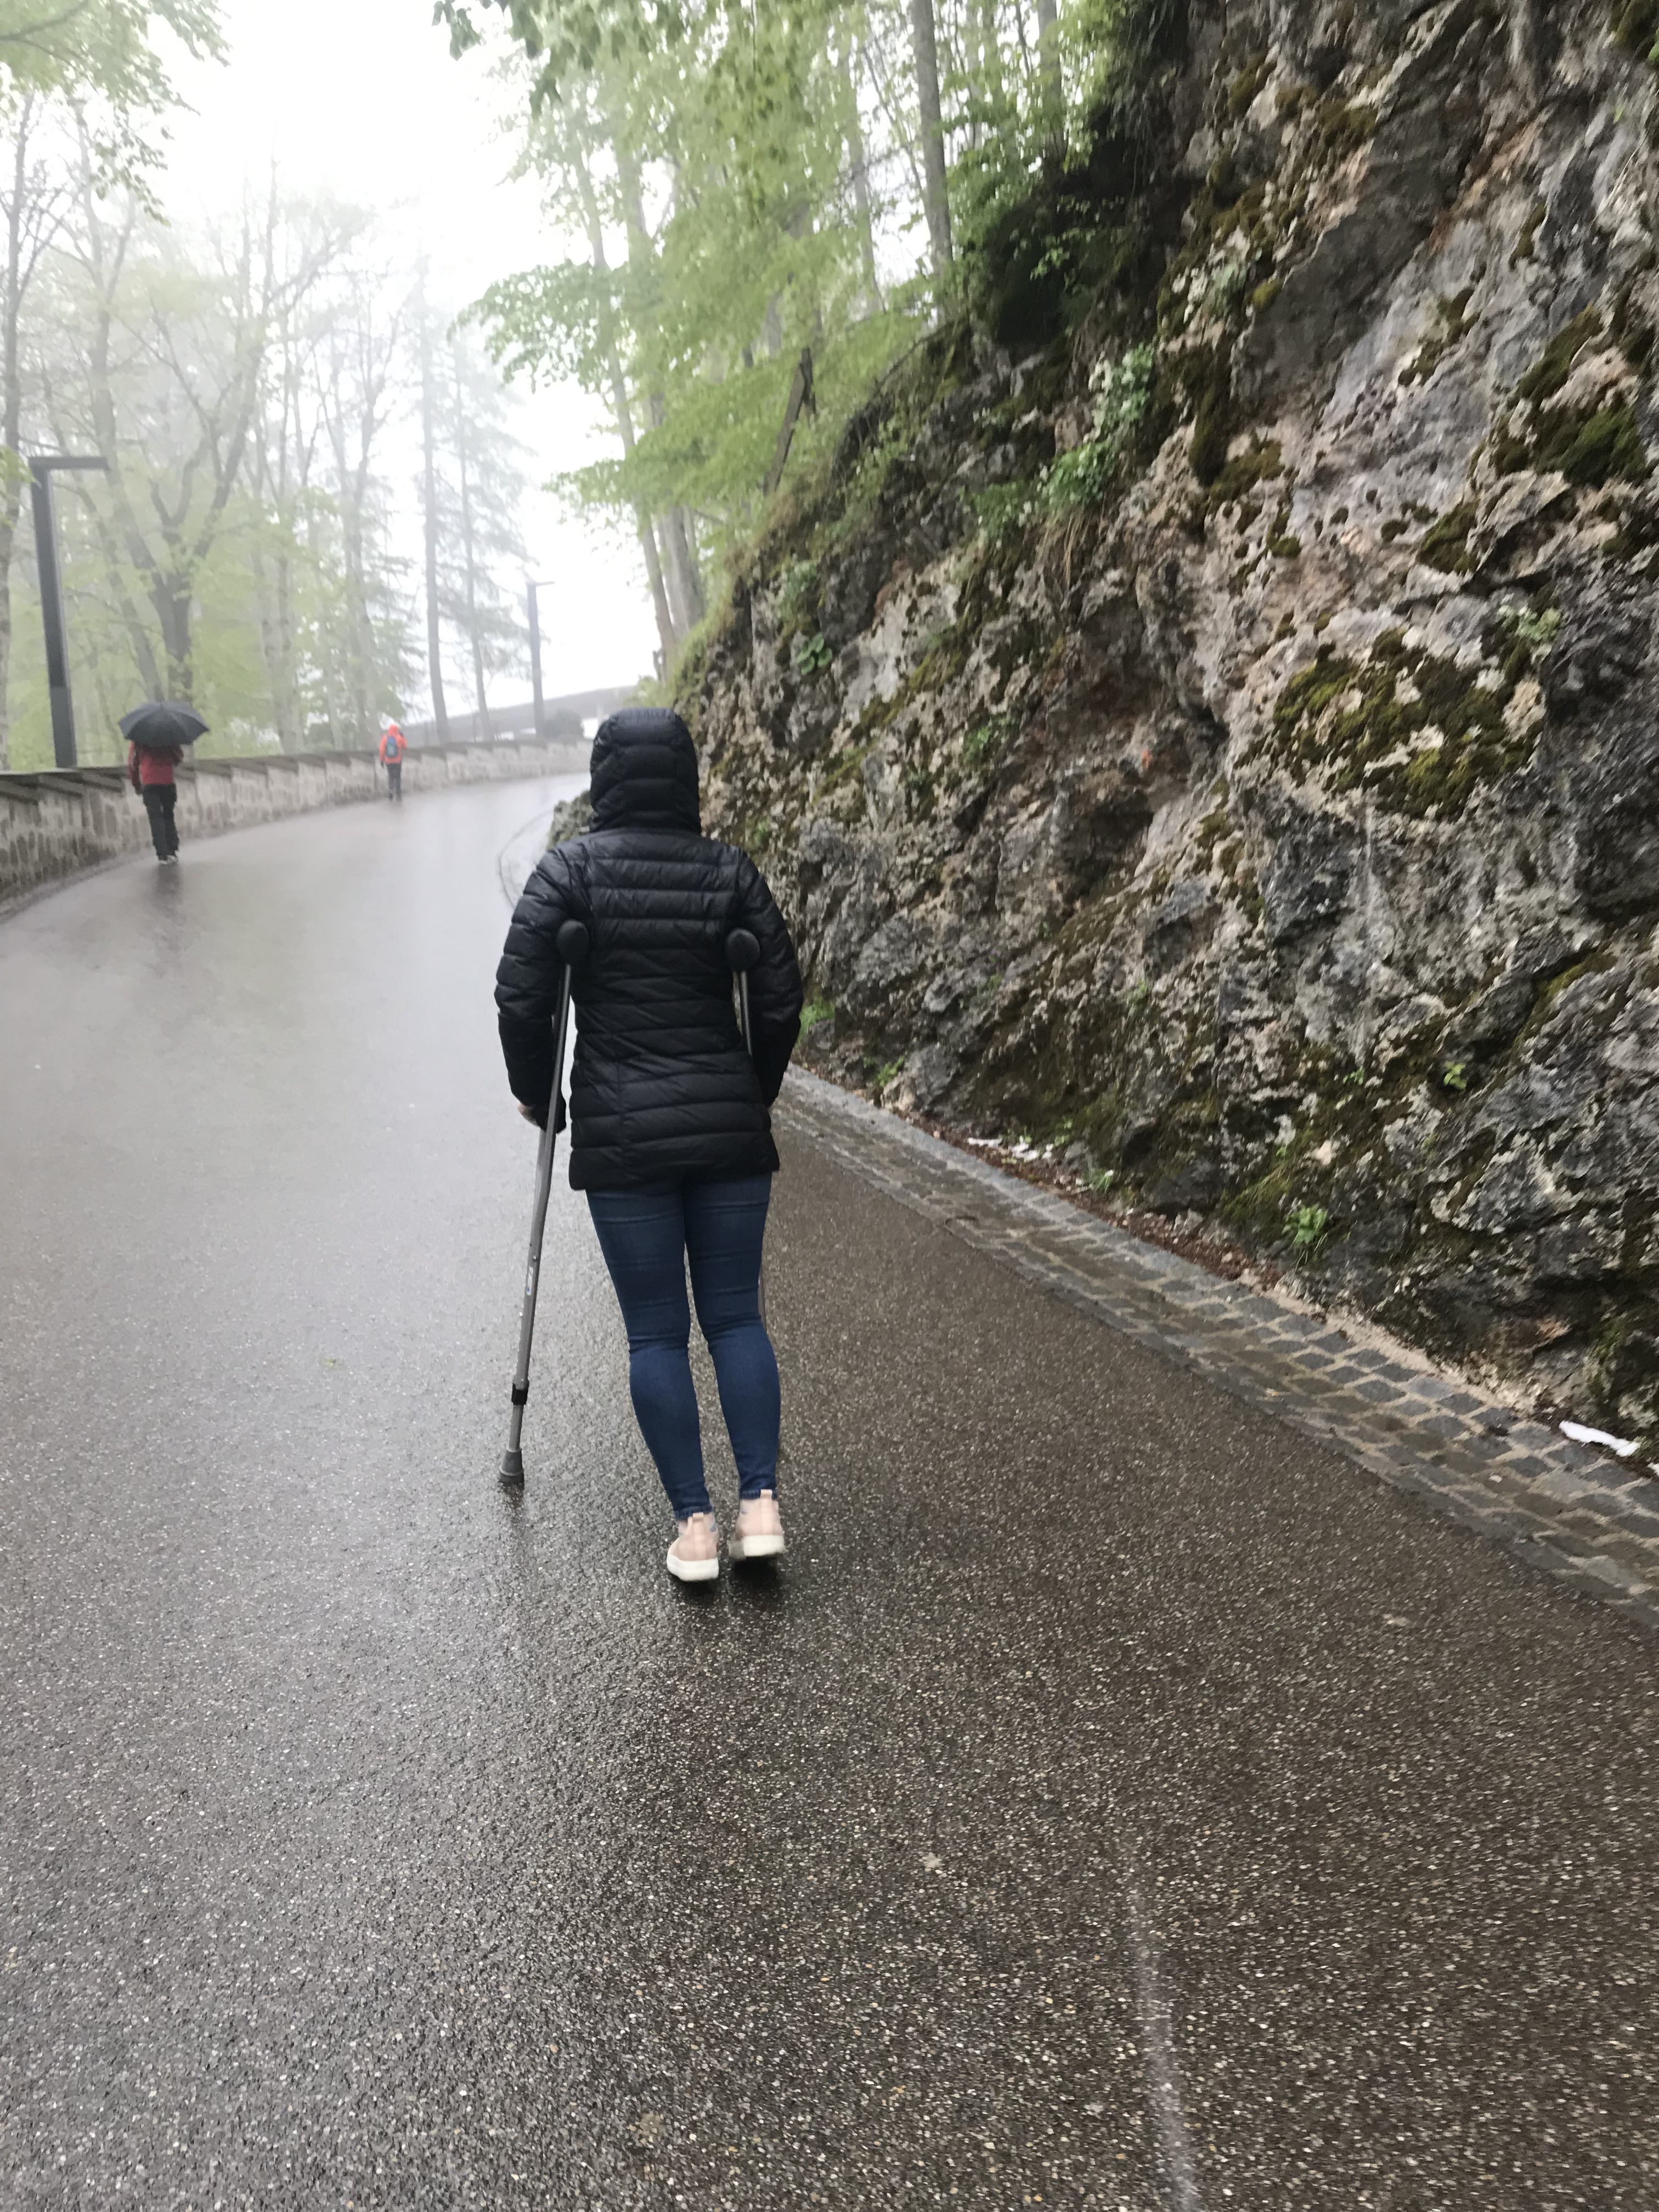 Monique McDown walking on crutches on a trip to Germany. McDown's right leg is paralyzed from an accident she was in while serving her mission in Brazil.